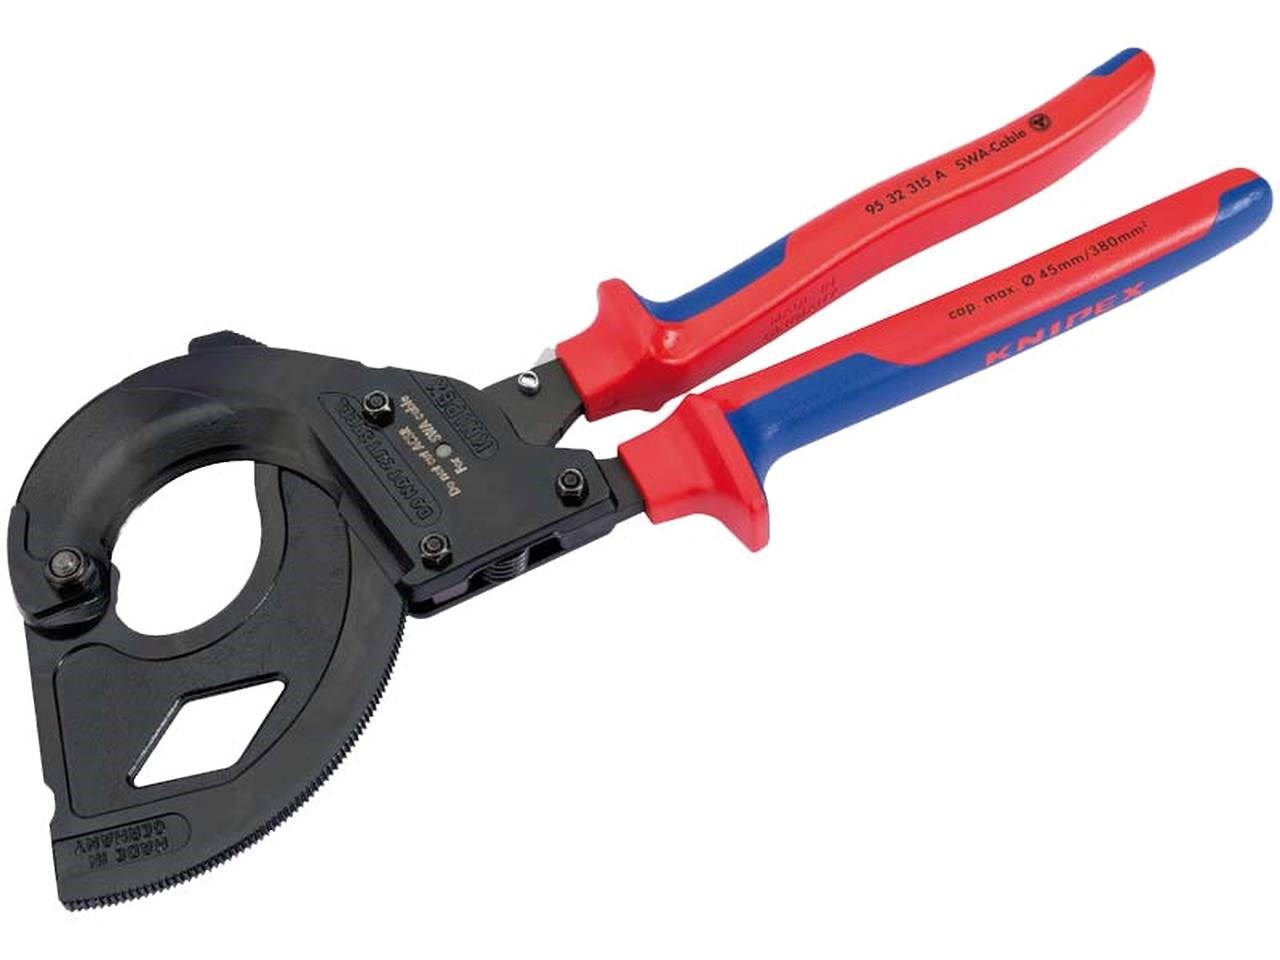 Knipex 82575 315mm Ratchet Action Cable Cutter For SWA Cable